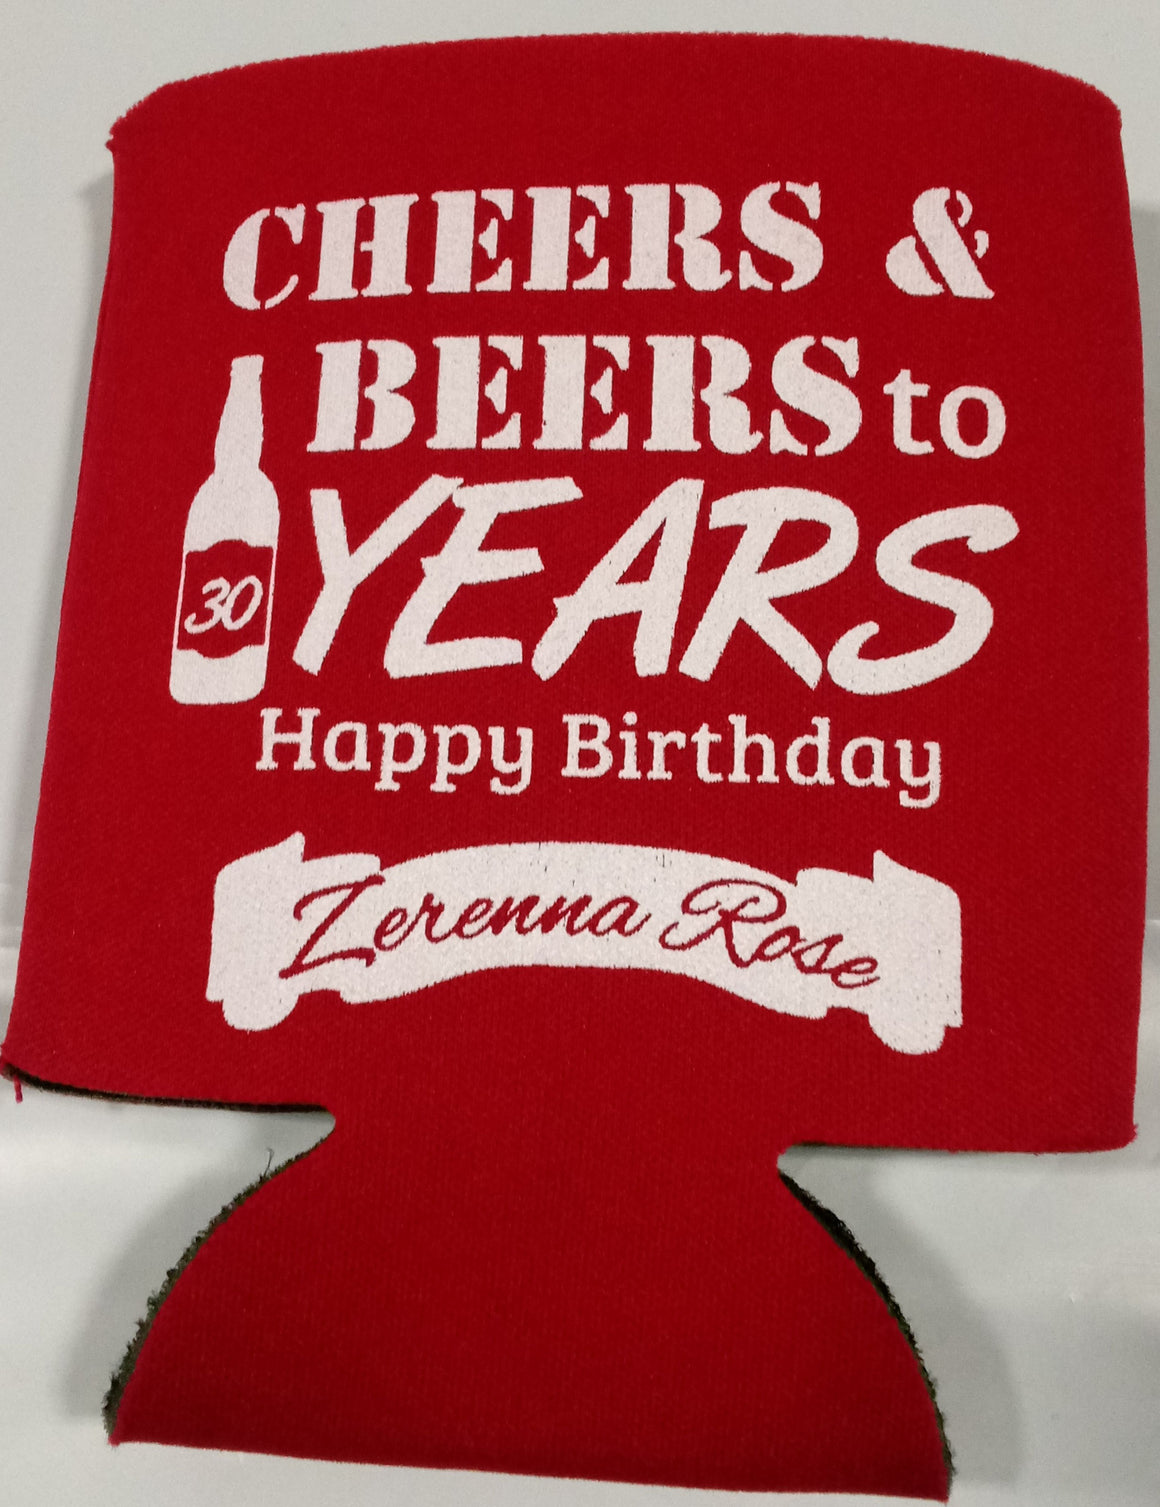 Cheers and Beers 30th Birthday party favors can coolers